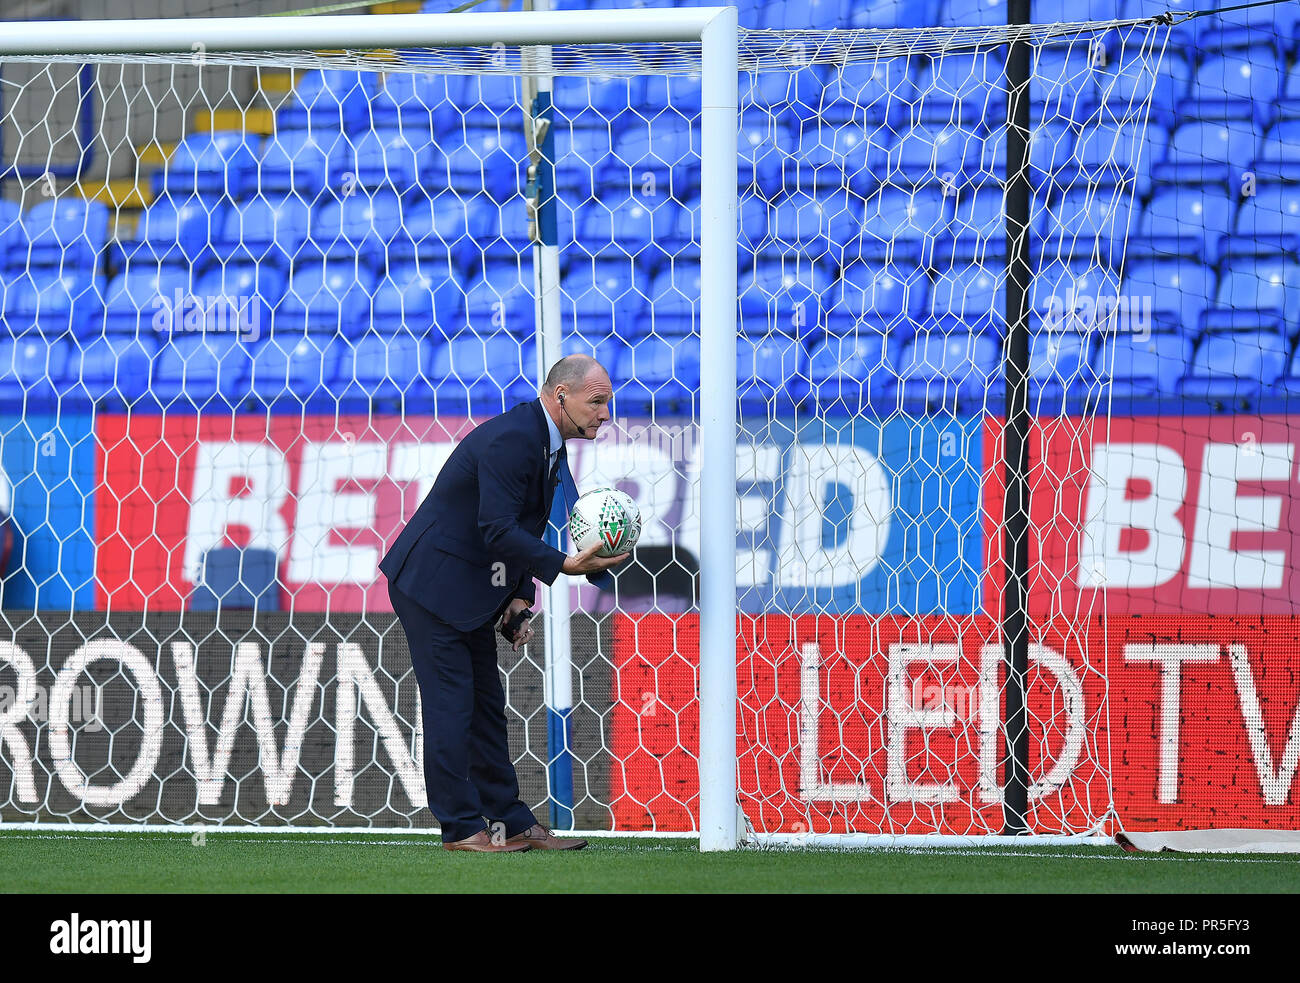 The match official checks the goal line technology before the Sky Bet Championship match at the University of Bolton Stadium. - Stock Image